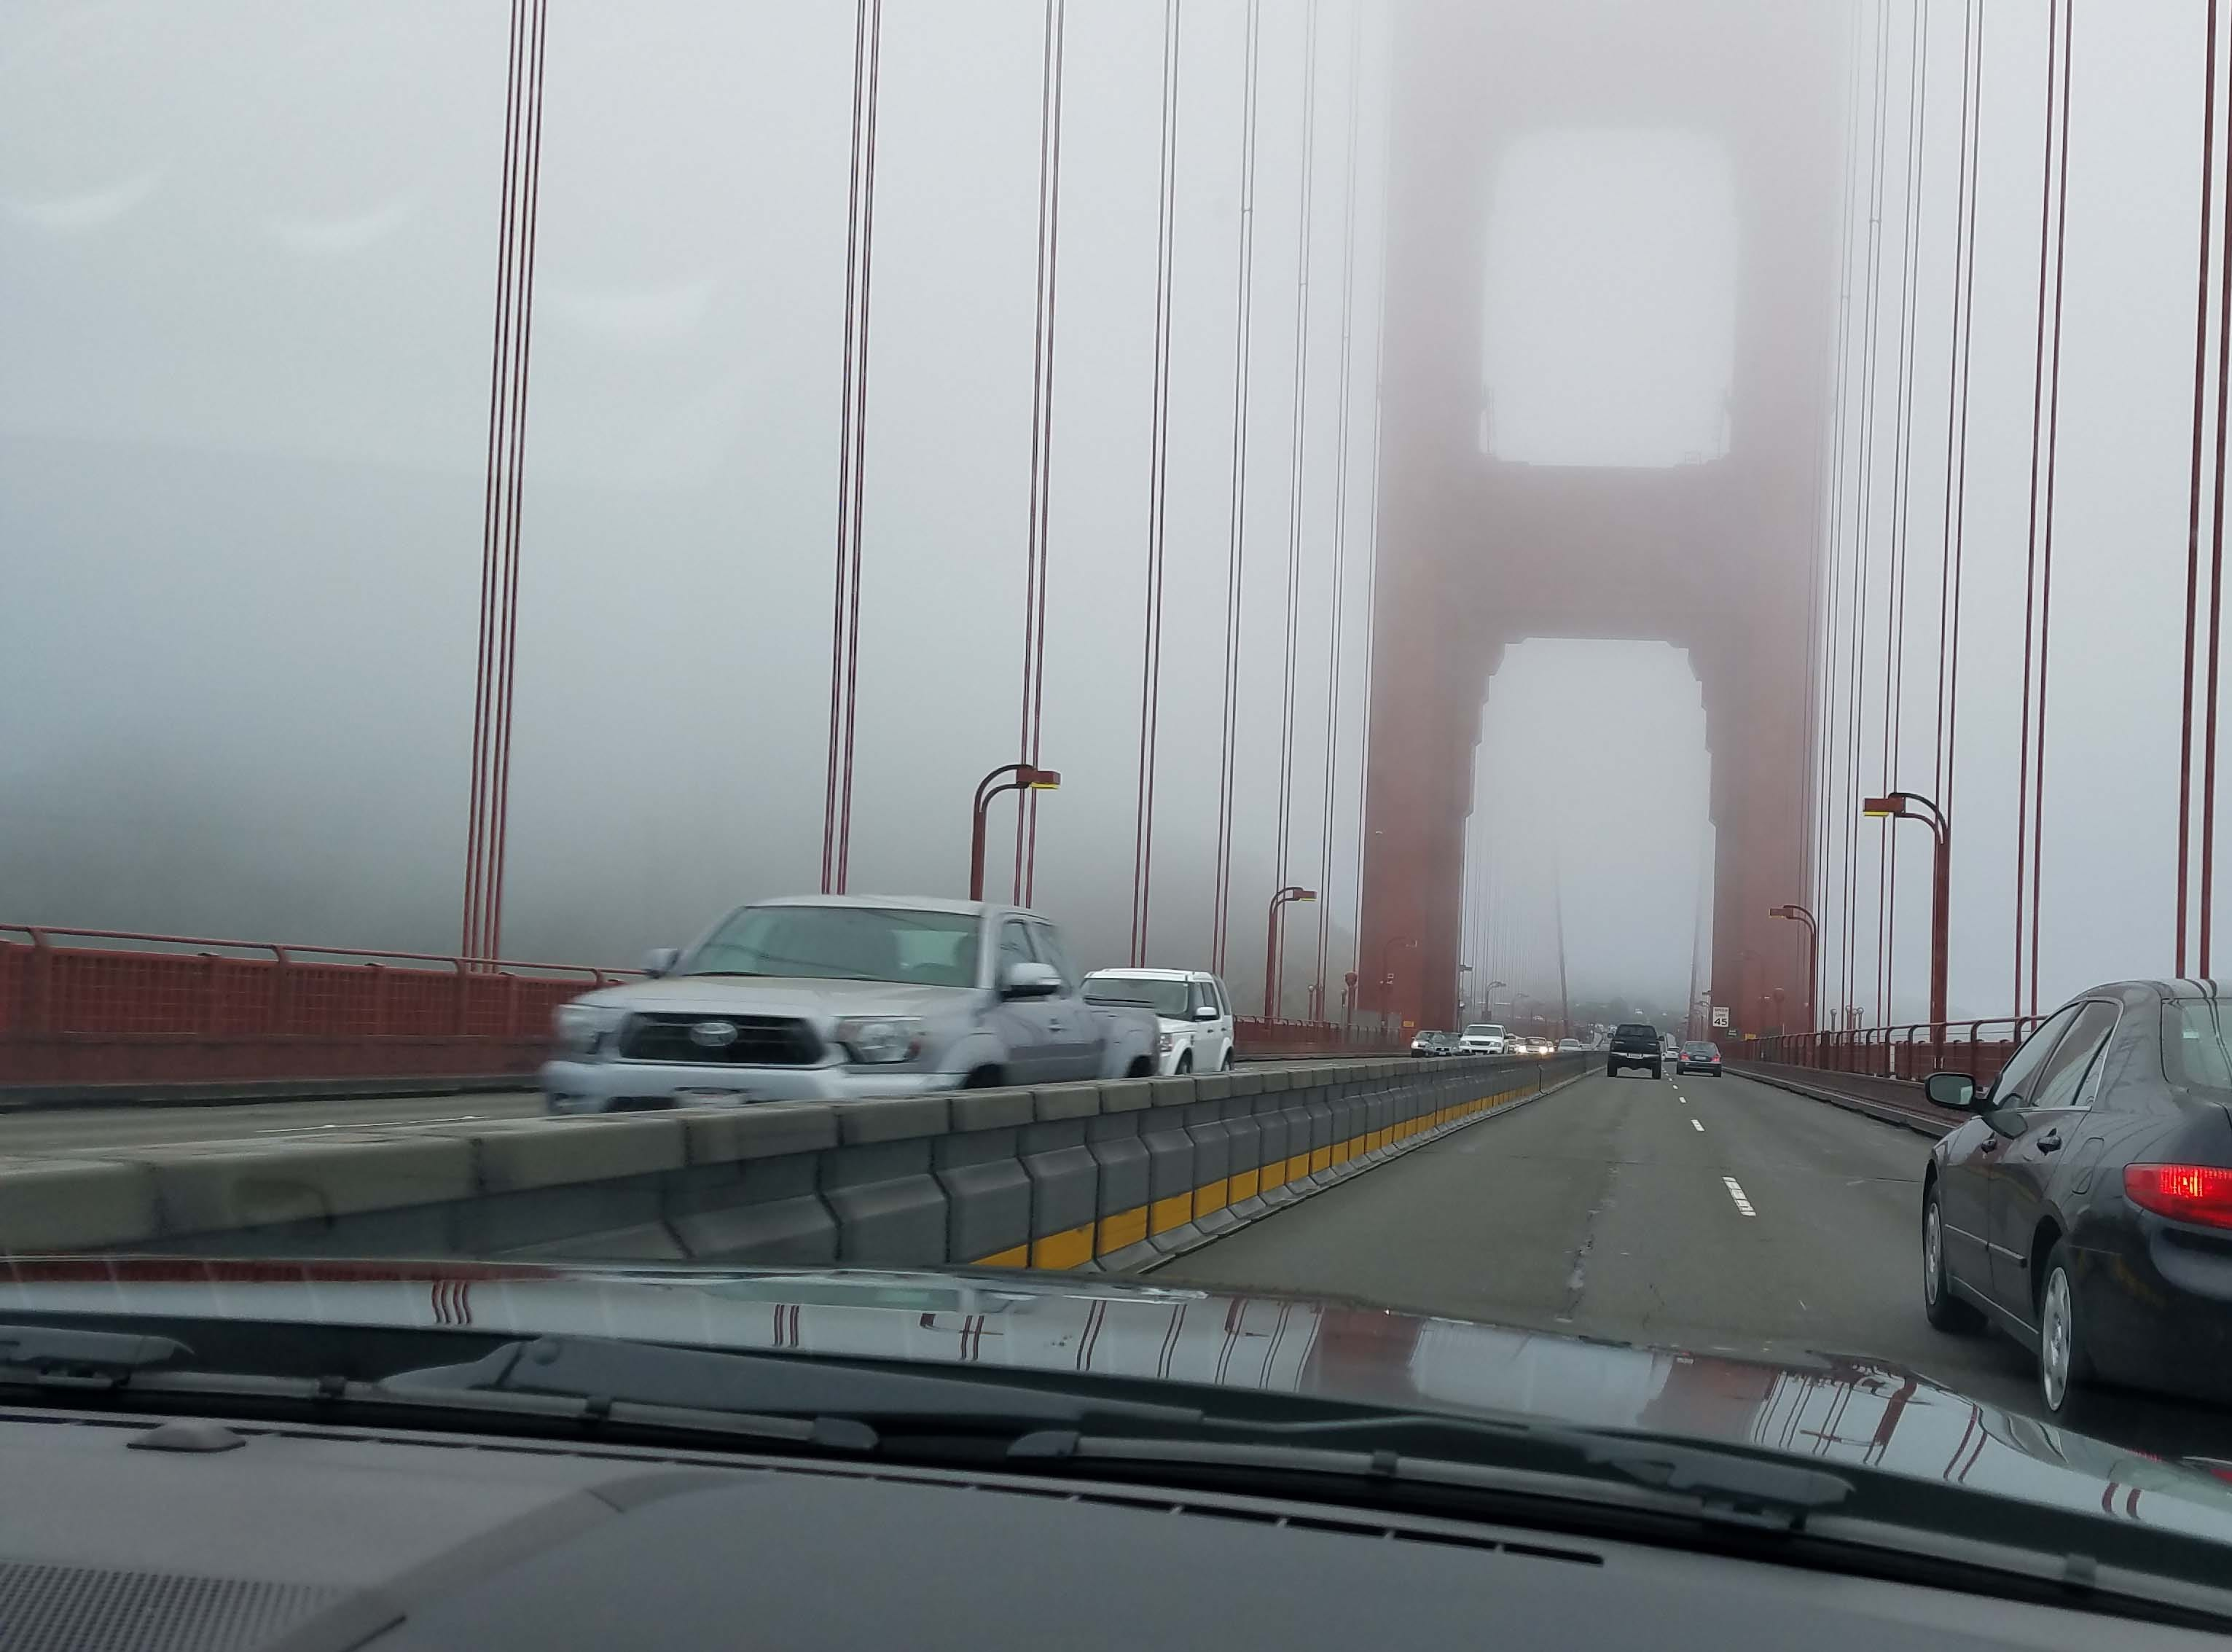 """The movie """"Bullitt"""" has planned to film on the San Francisco Bay Bridge — but the studio couldn't get a permit. Here, a 2019 Ford Mustang Bullitt makes the crossing in the early morning."""